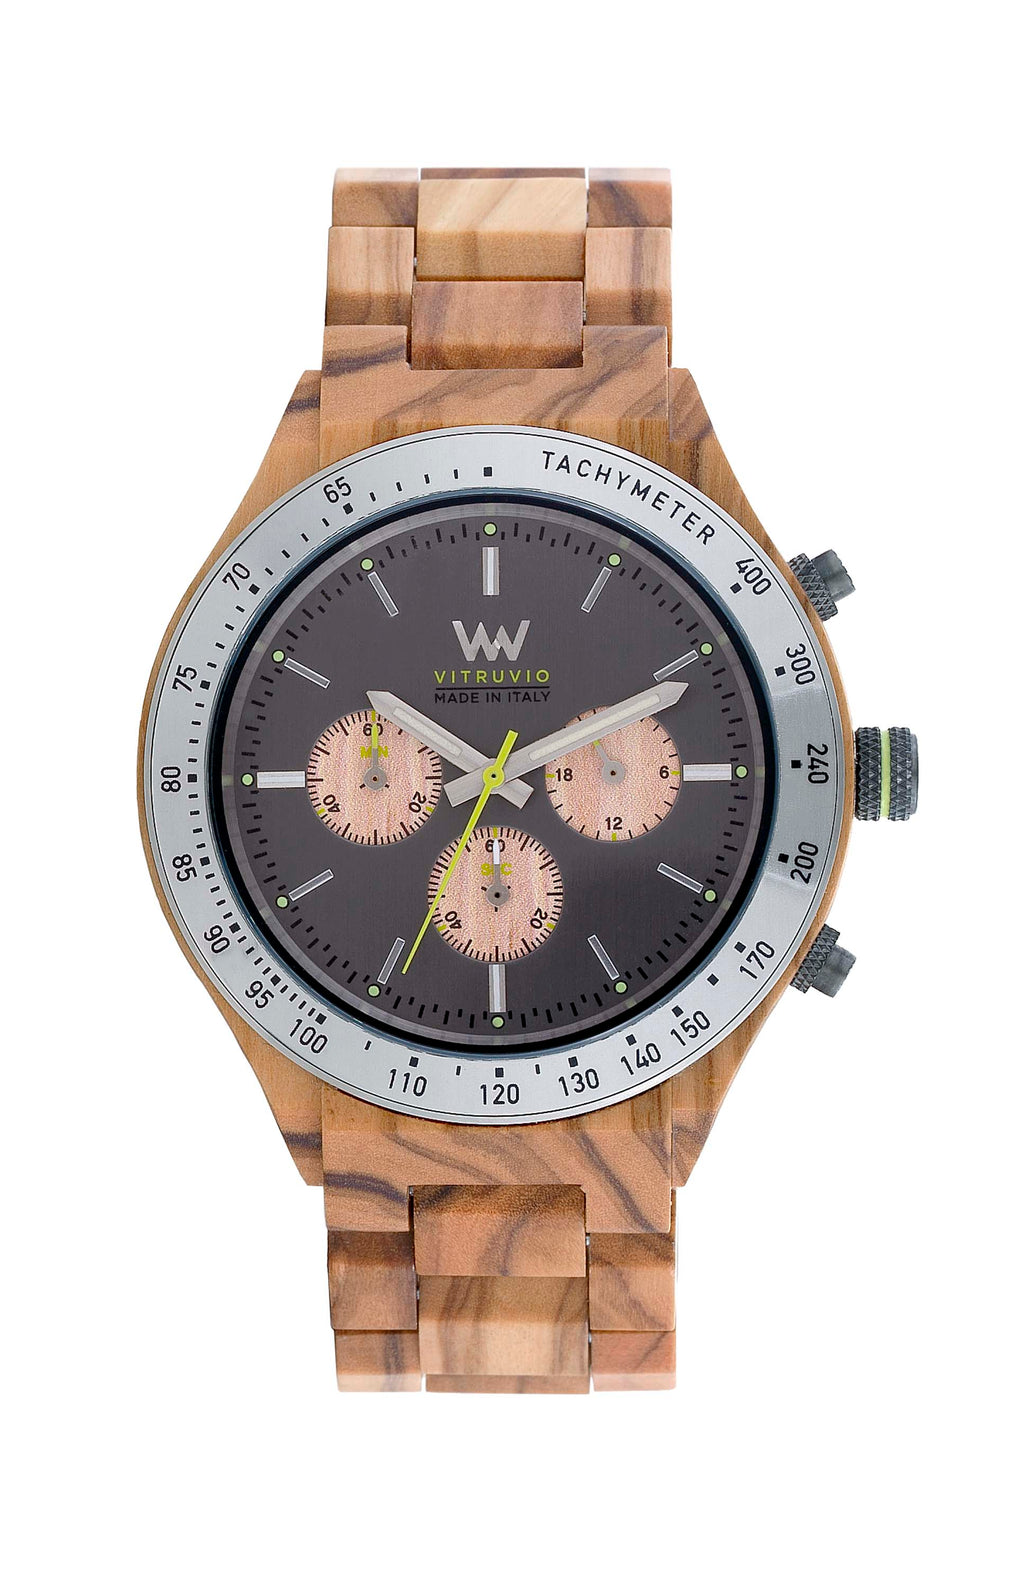 Vitruvio MB Olive Gun Wood WeWood Watch